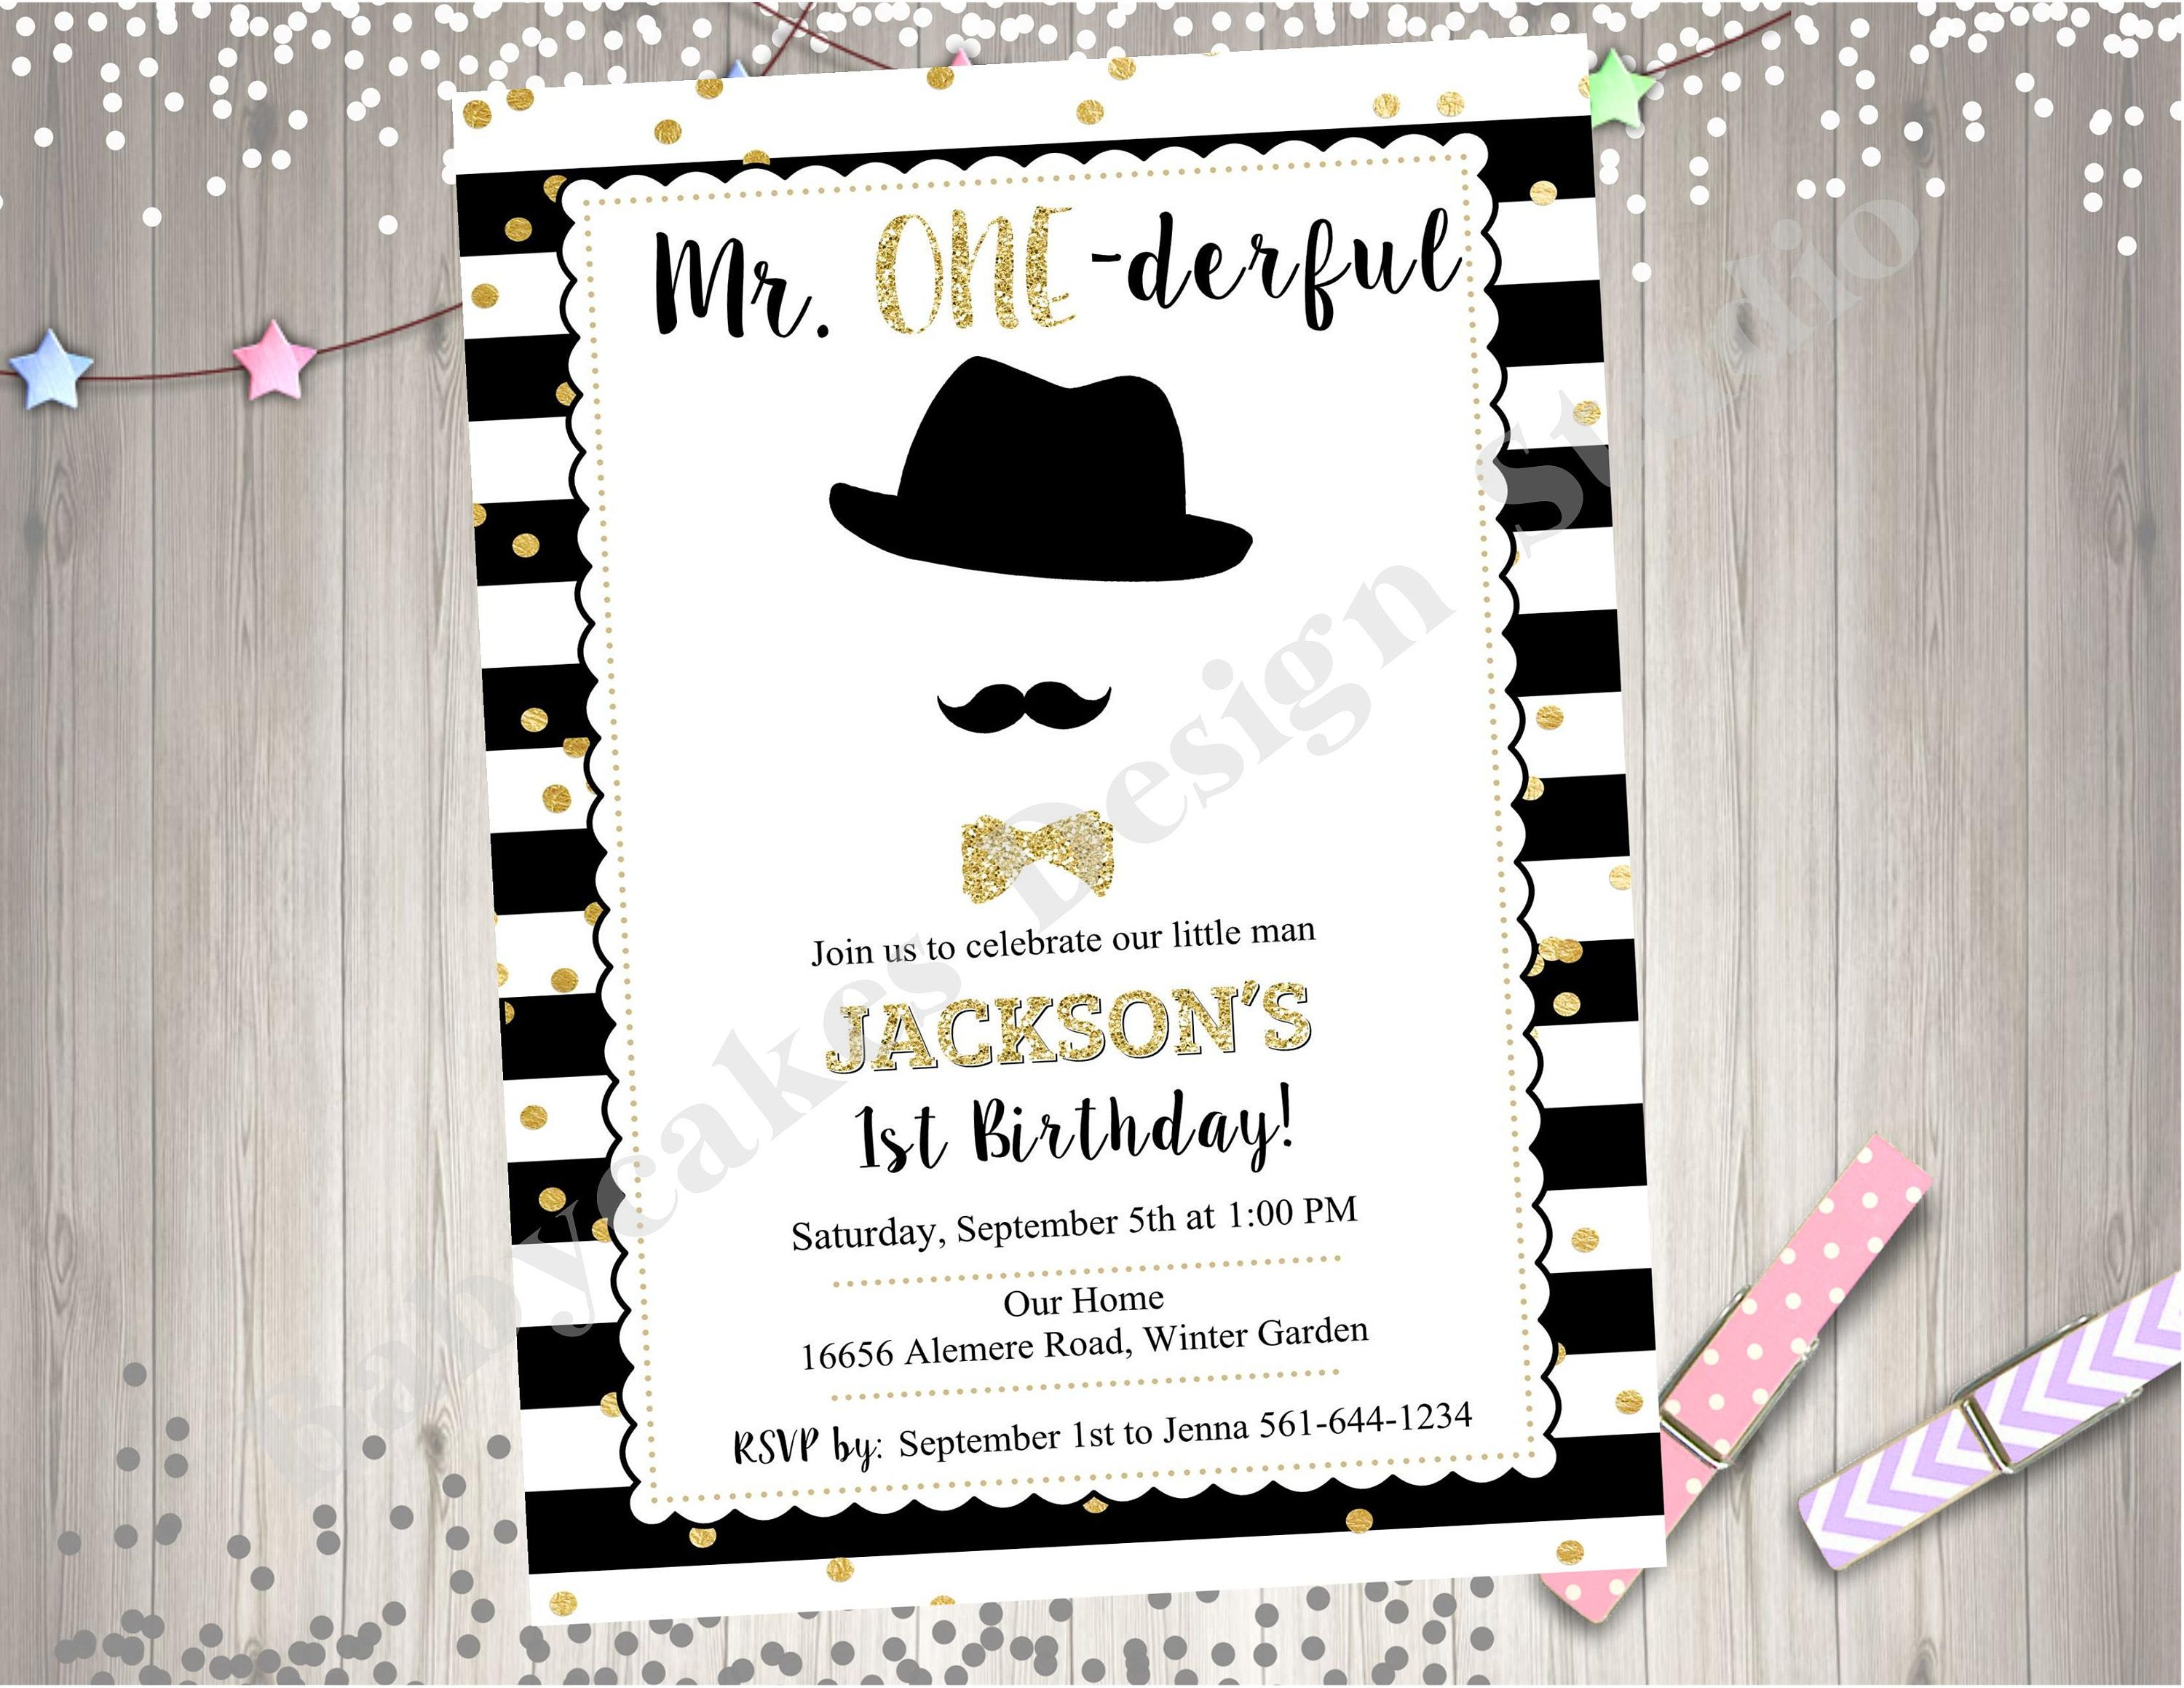 Download Now Free Template Little Man Birthday Party Invitations Little Man Birthday Boy Birthday Invitations Mustache Invitations